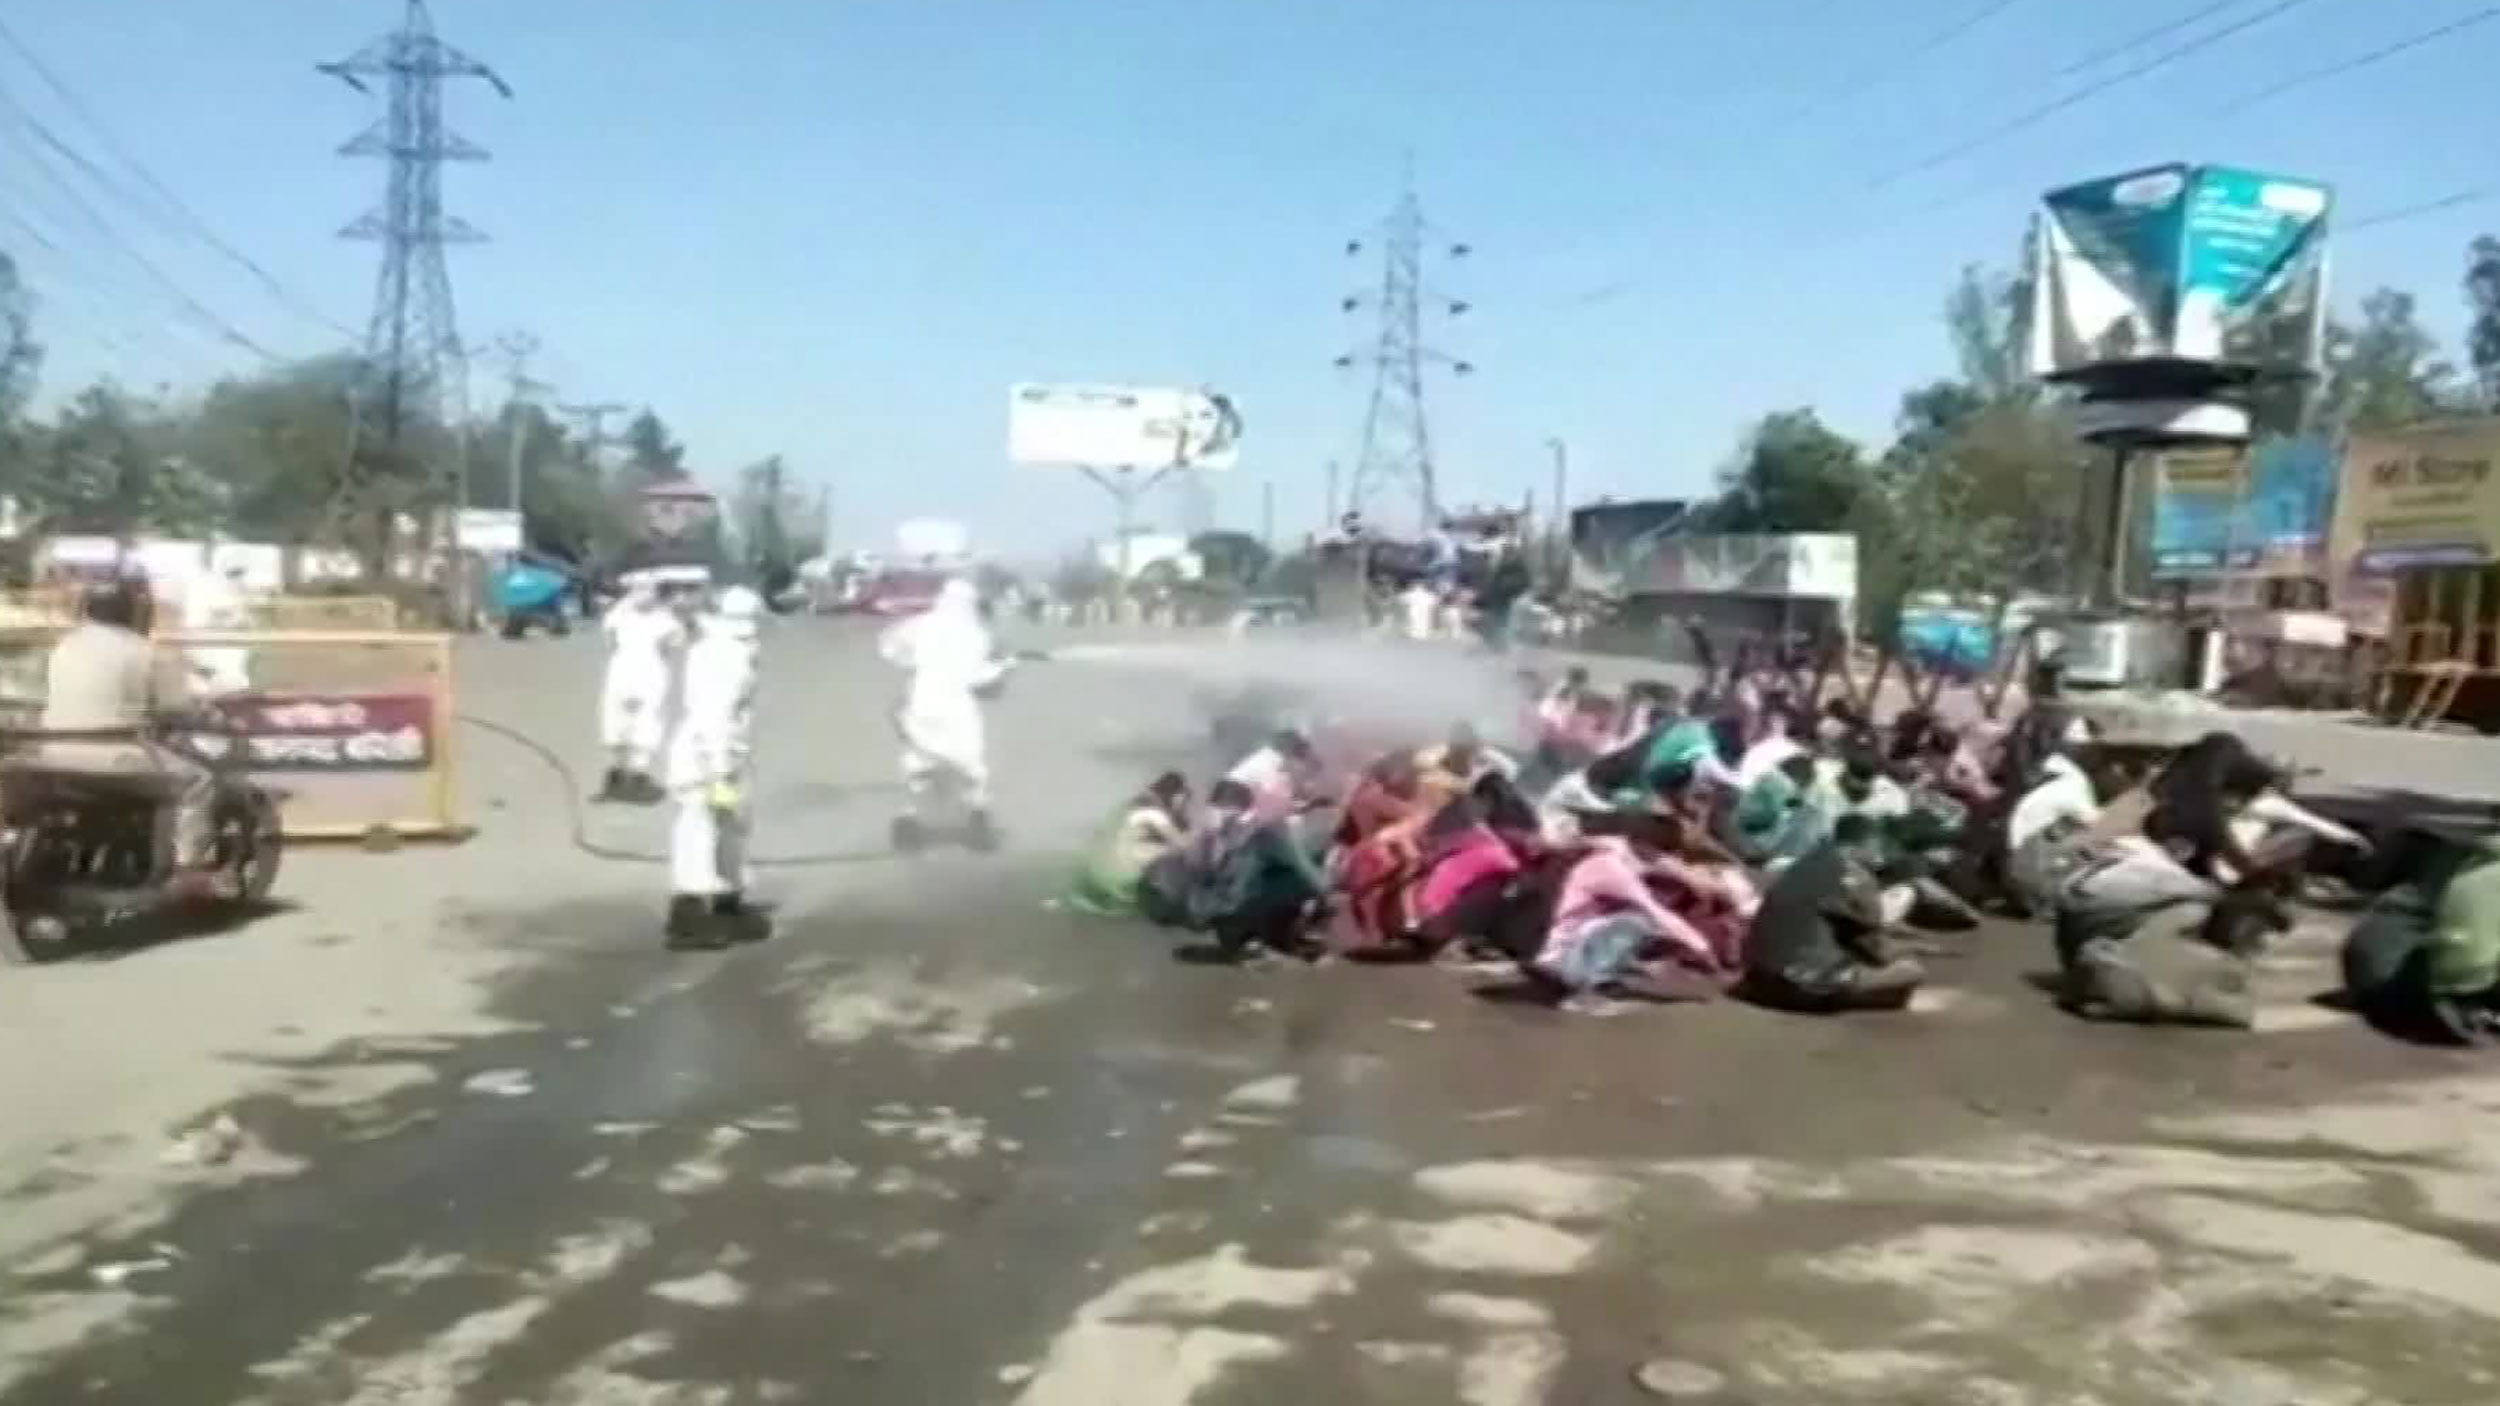 Workers are sprayed with disinfectant in Uttar Pradesh, India.